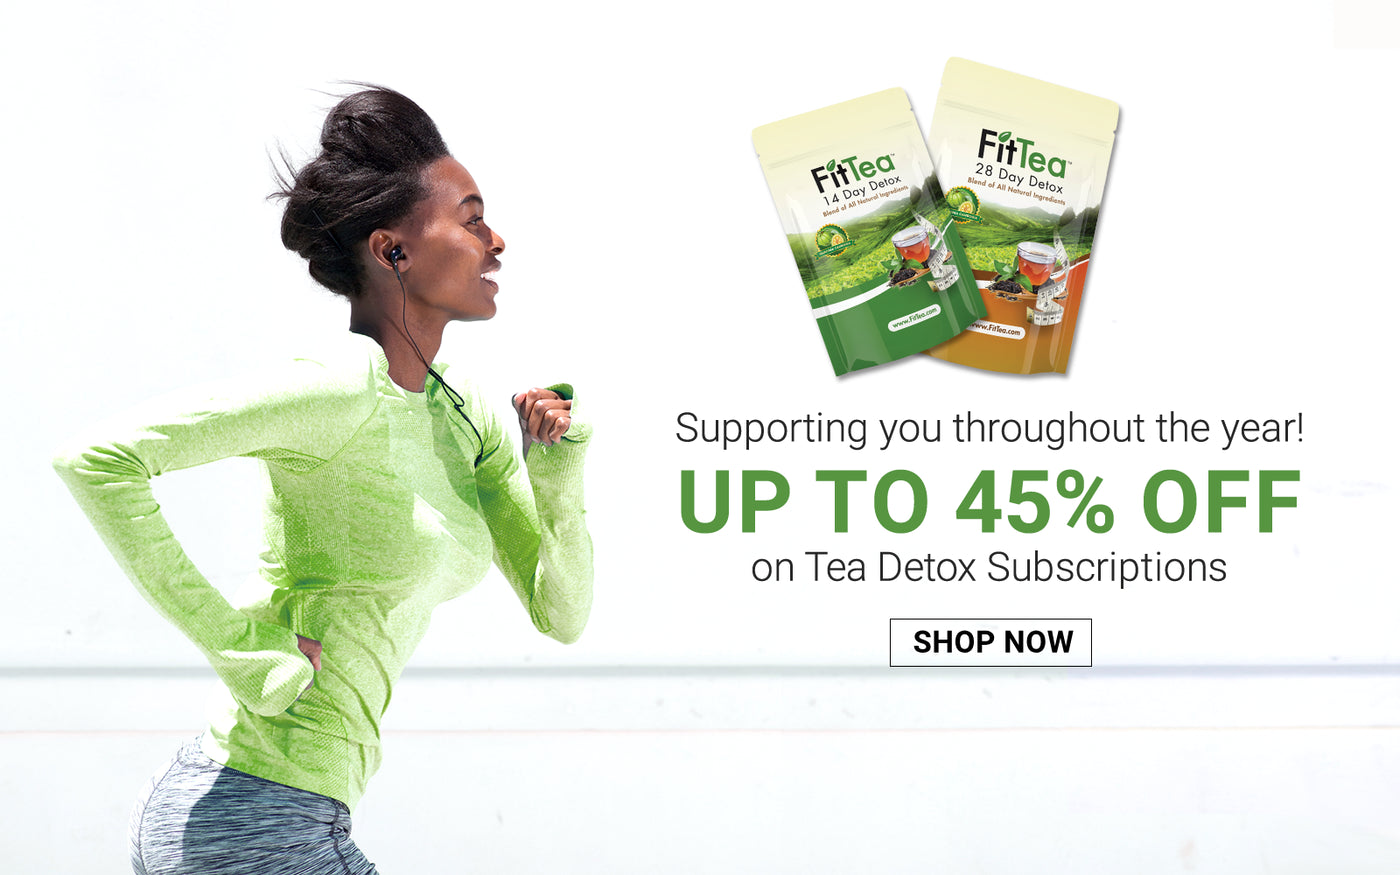 Fittea Detox Tea Enjoy Life Confidently Best Detox Tea